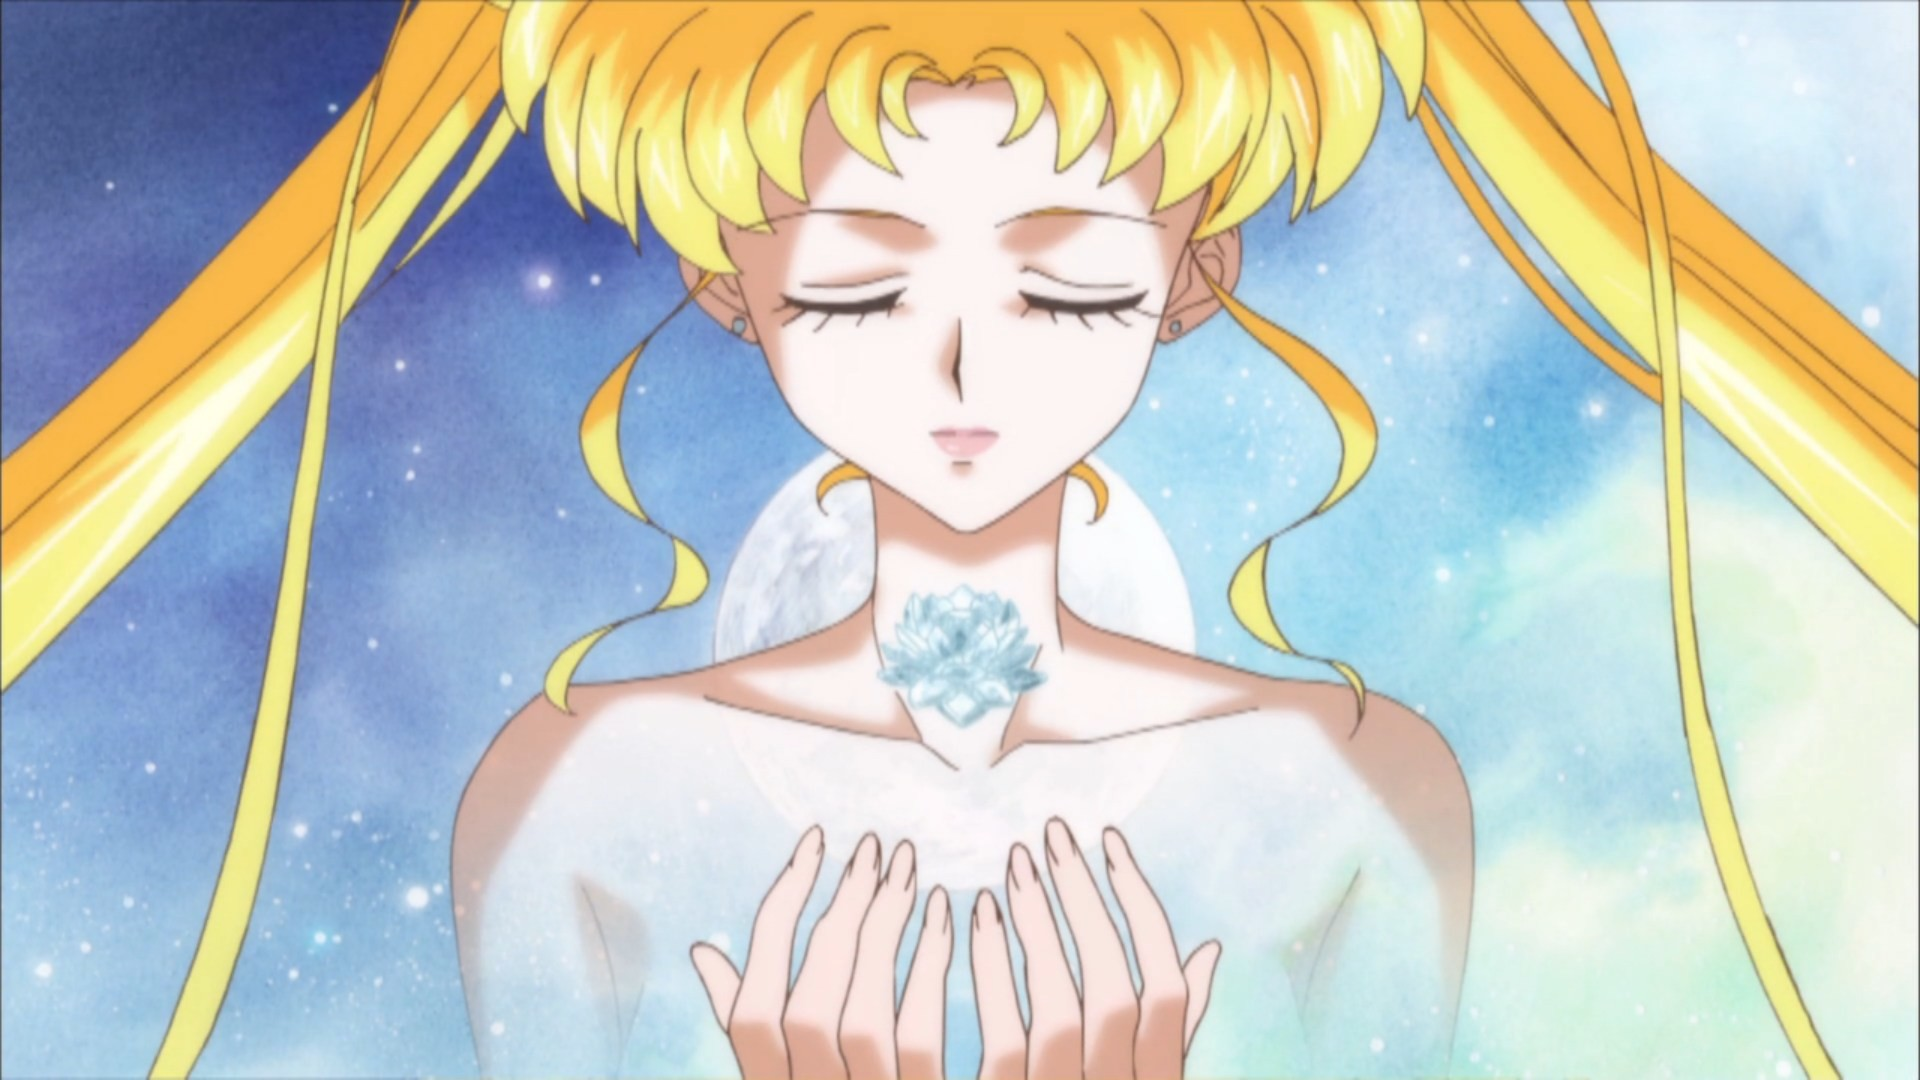 1920x1080 Sailor Moon Crystal Anime Photos - ImgHD : Browse and Download Free .